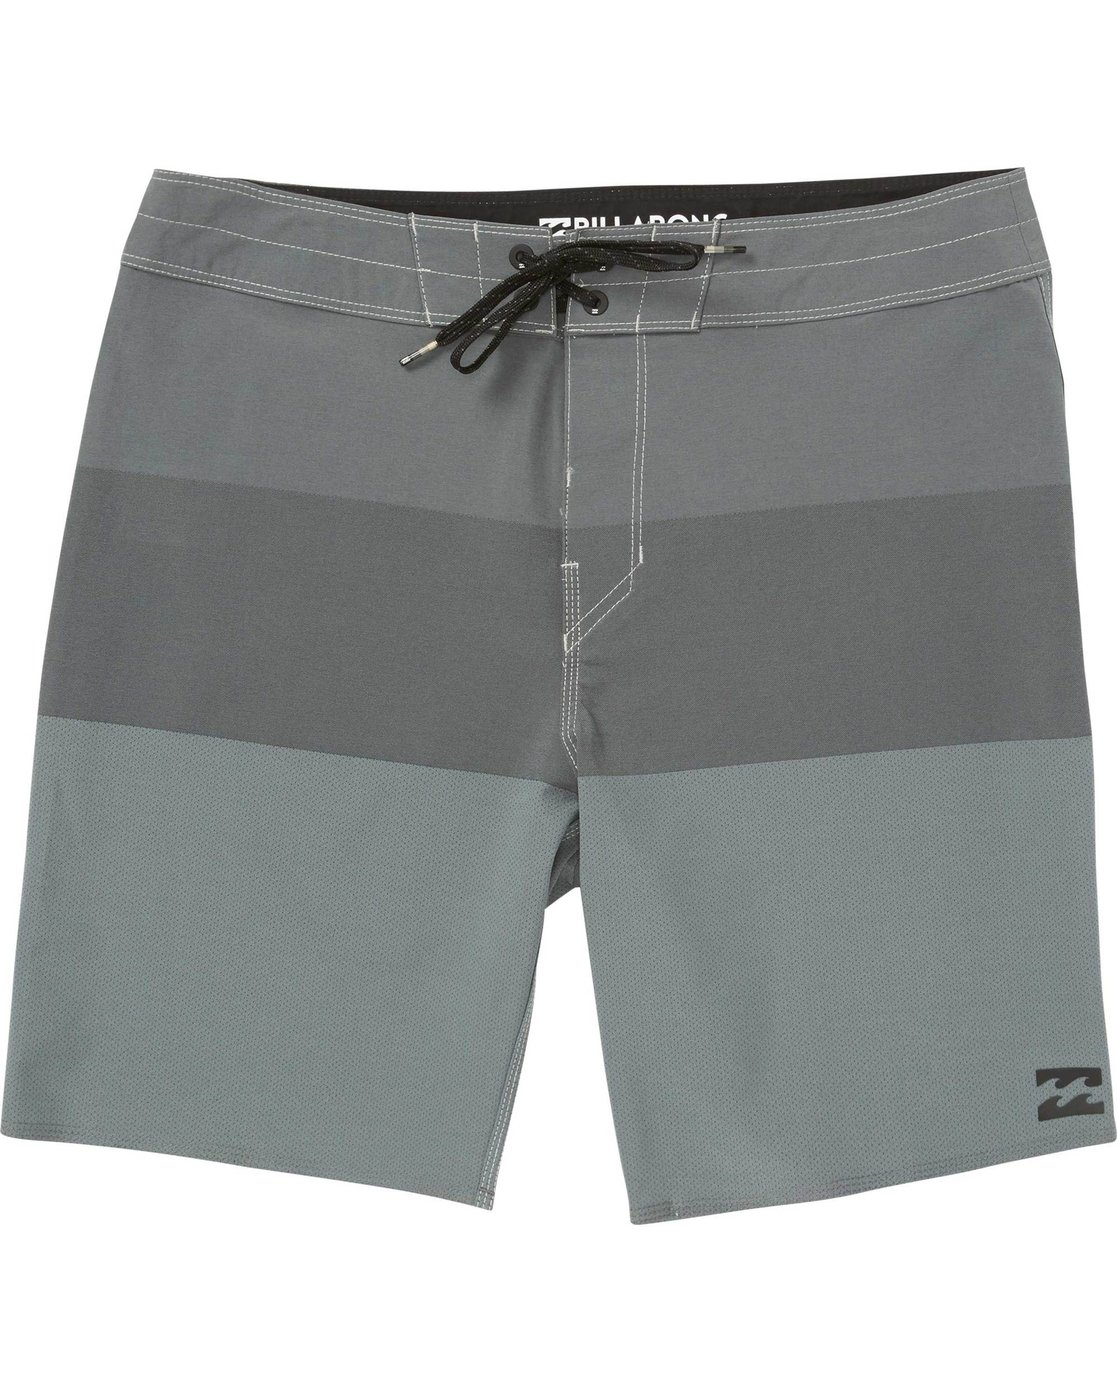 0 Tribong Airlite Boardshorts Grey M101NBTB Billabong 952218523